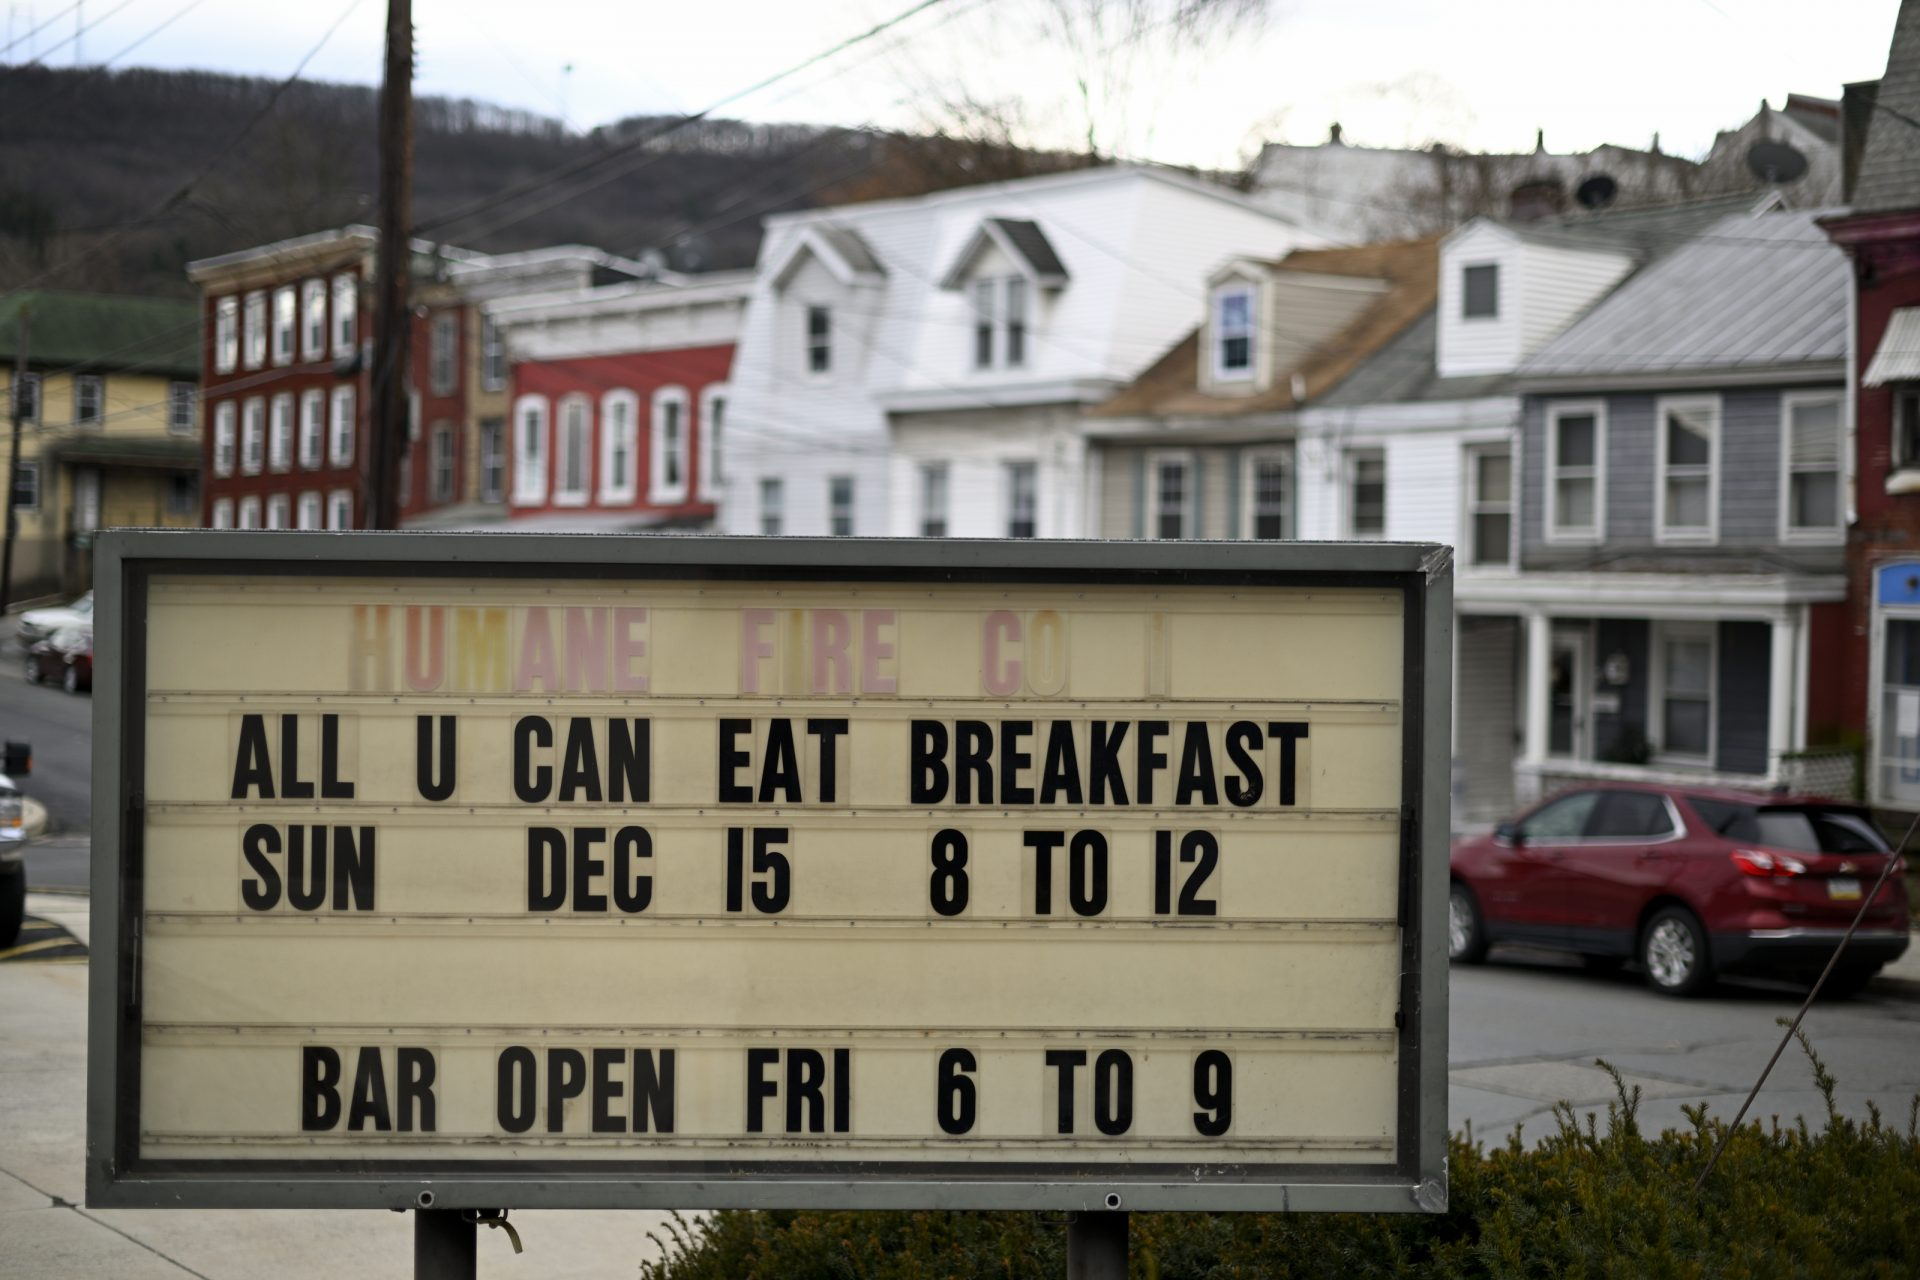 Upcoming social events held at the companies social hall are announced on the board outside Humane Fire Co., in Pottsville, PA, on December 15, 2019.